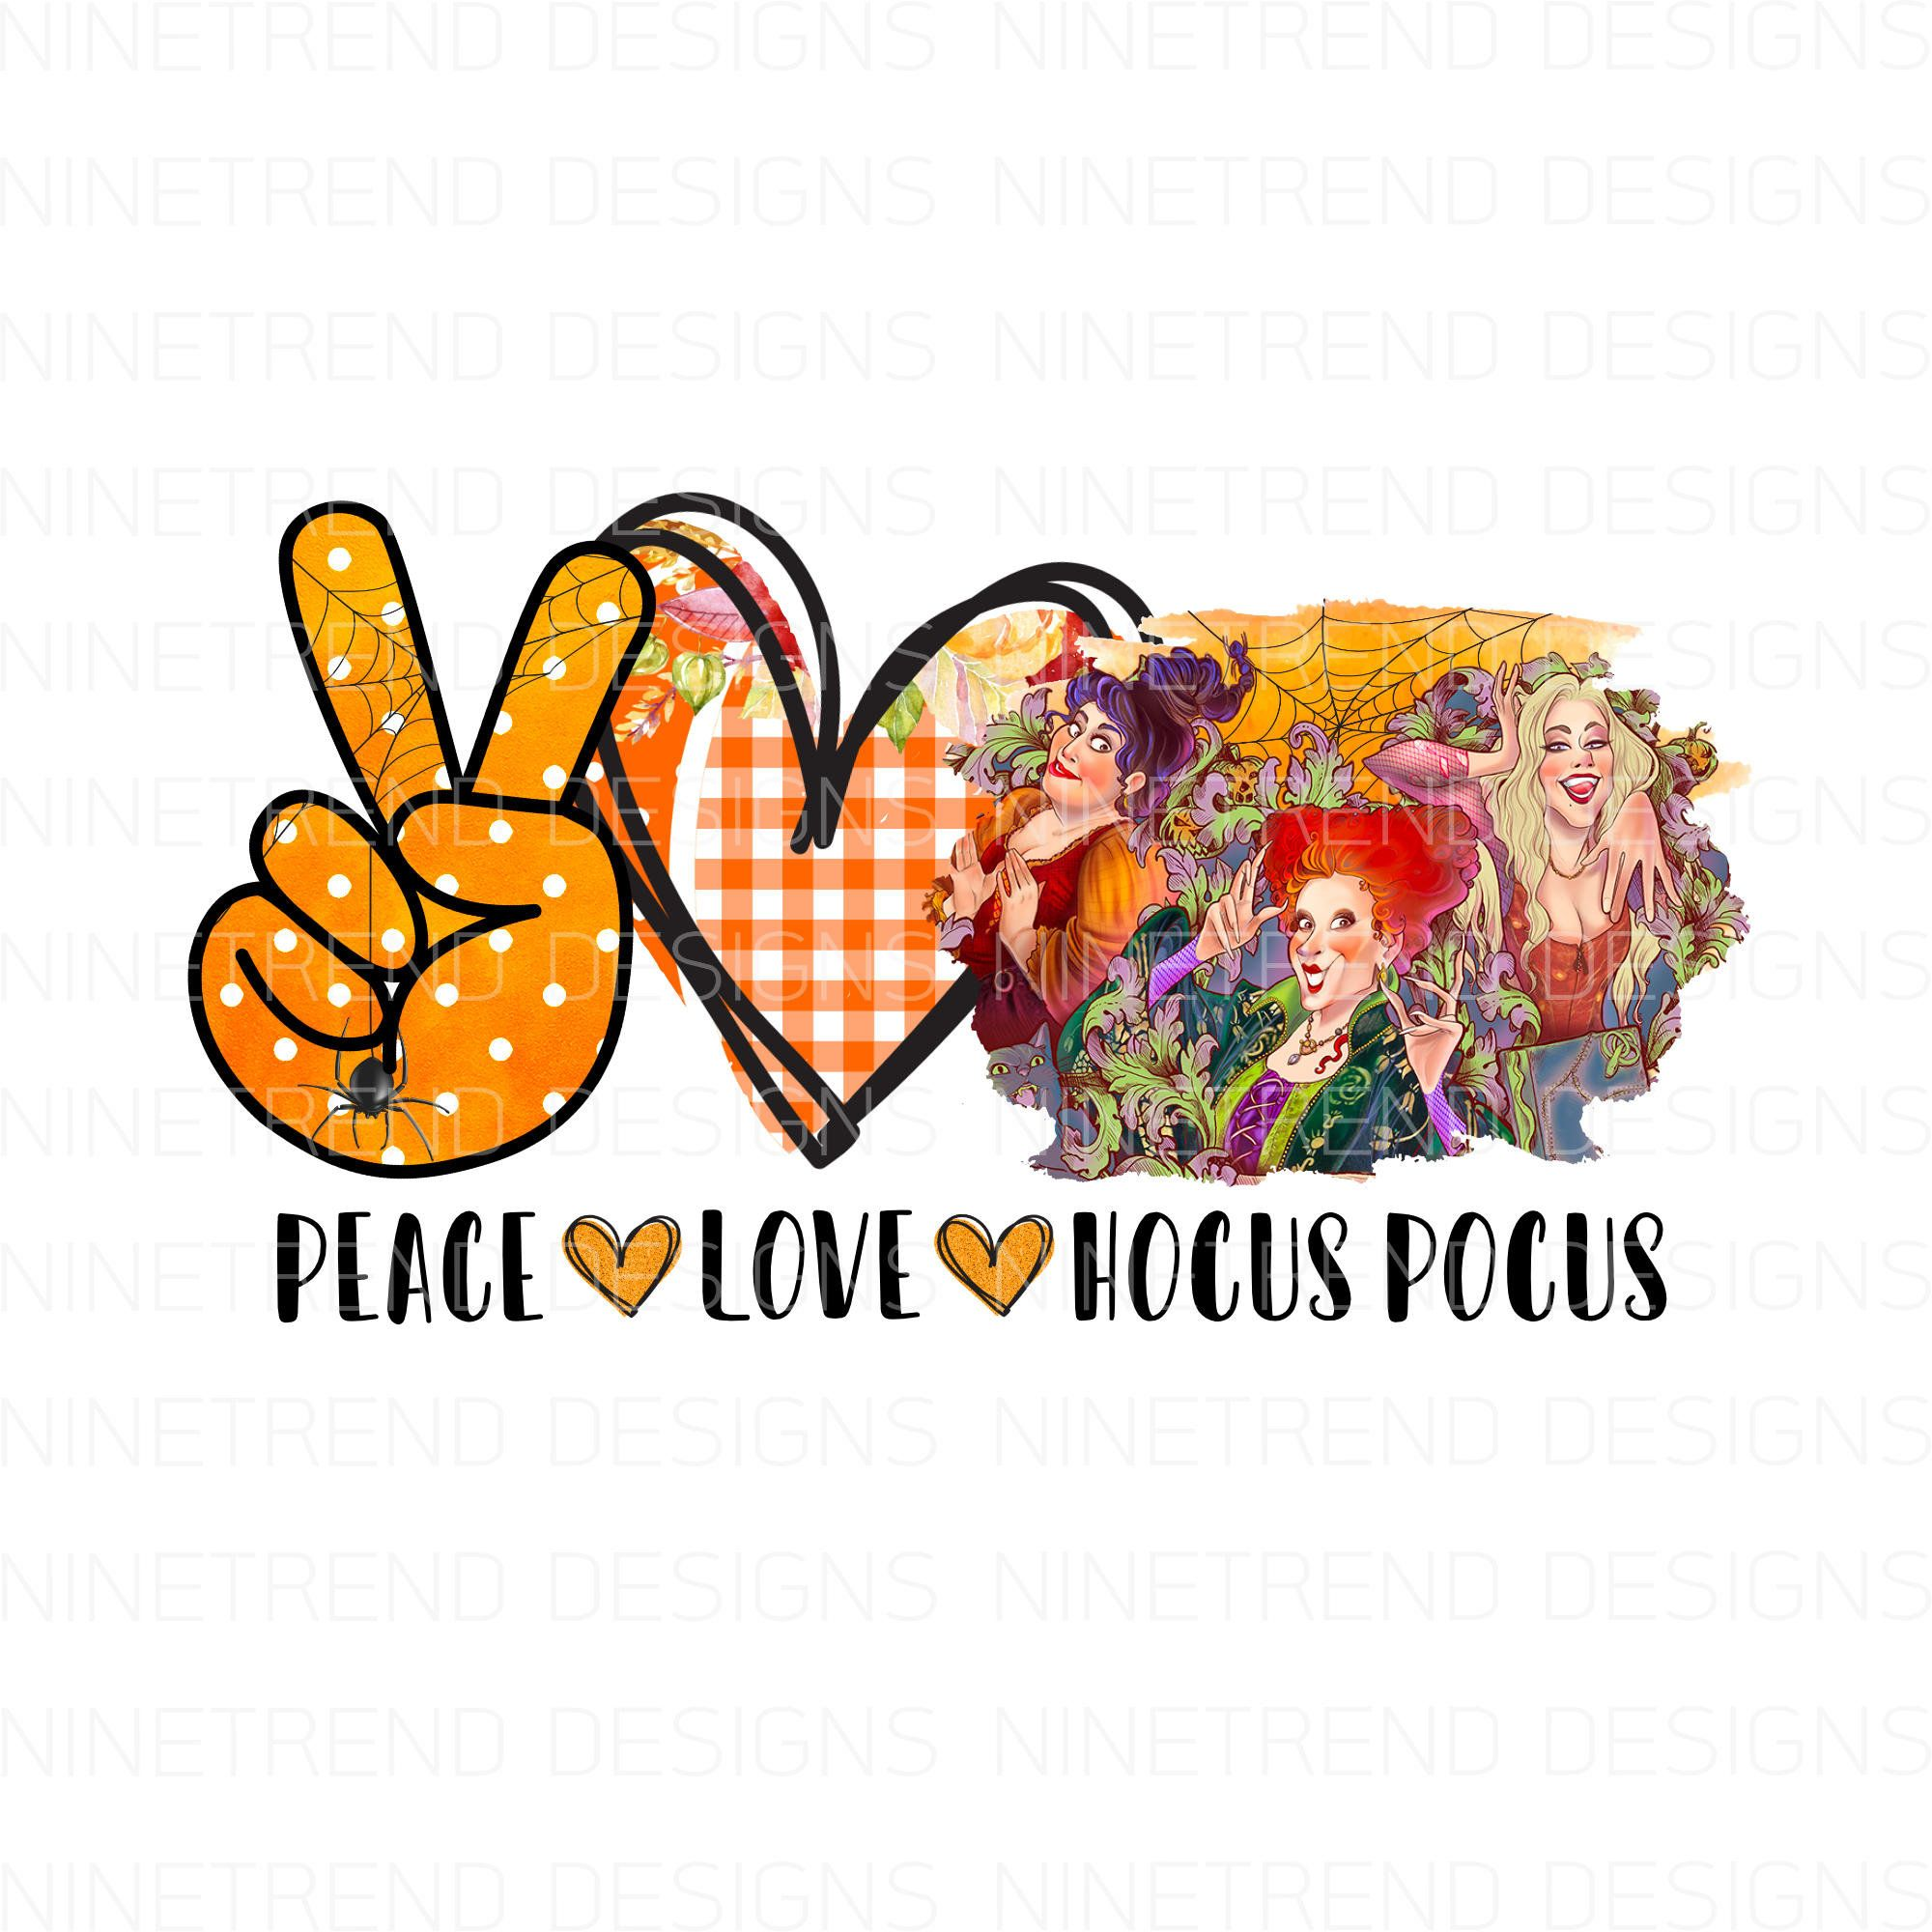 Peace Love Witches Pnghocus Pocus Sublimation Designs Etsy In 2020 Peace And Love Halloween Design Hocus Pocus